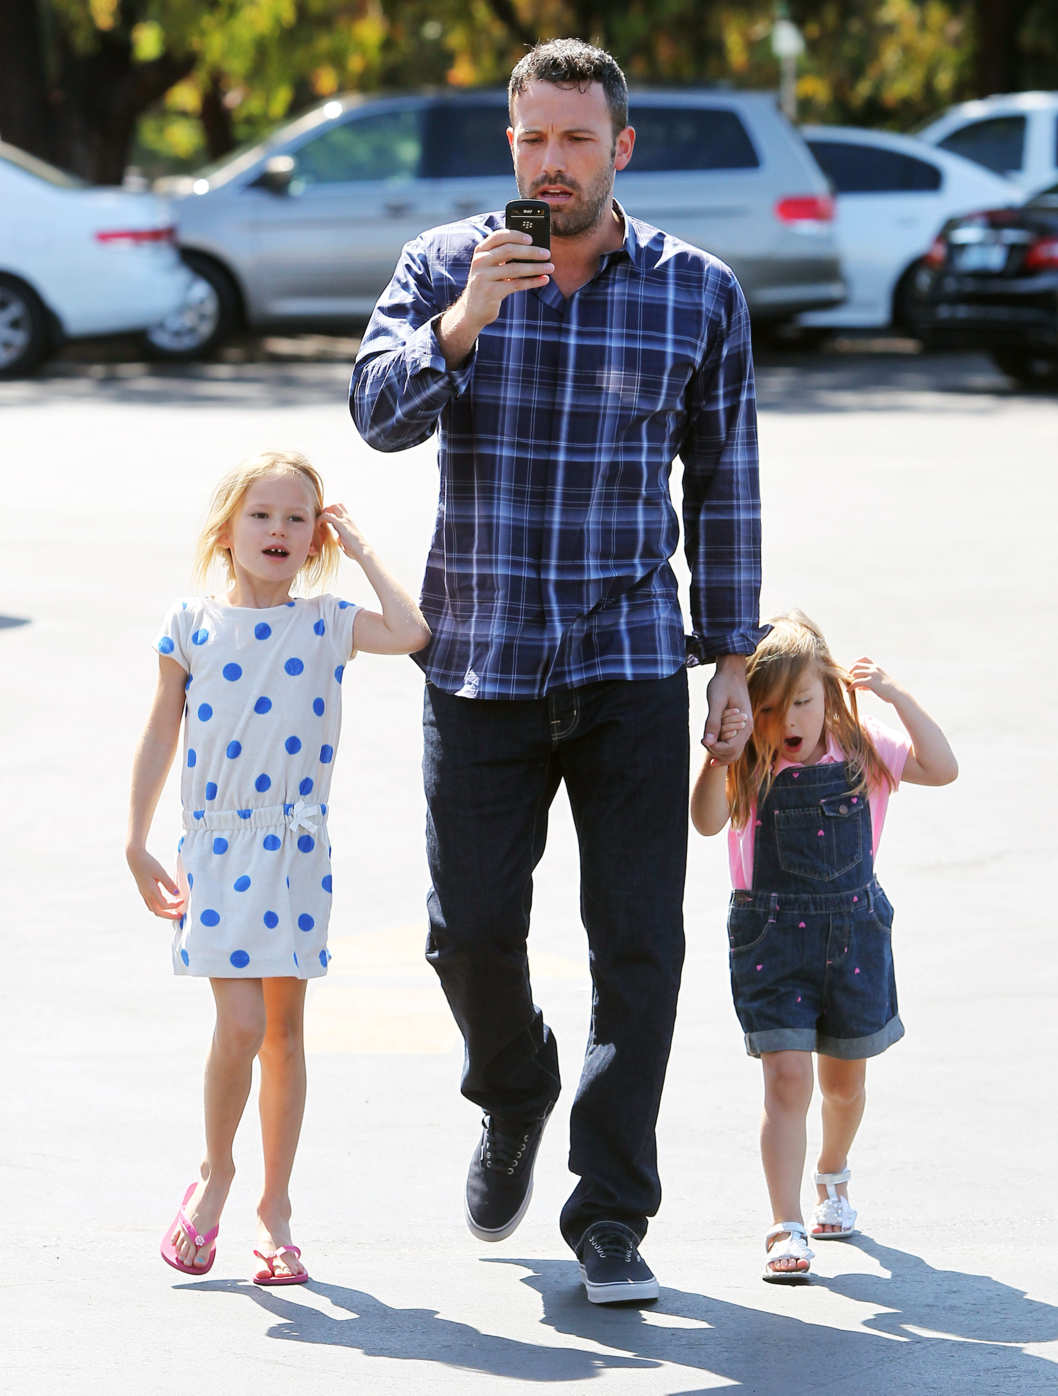 Ben Affleck takes Violet and Seraphina to the Farmers Market in Pacific Palisades, California.